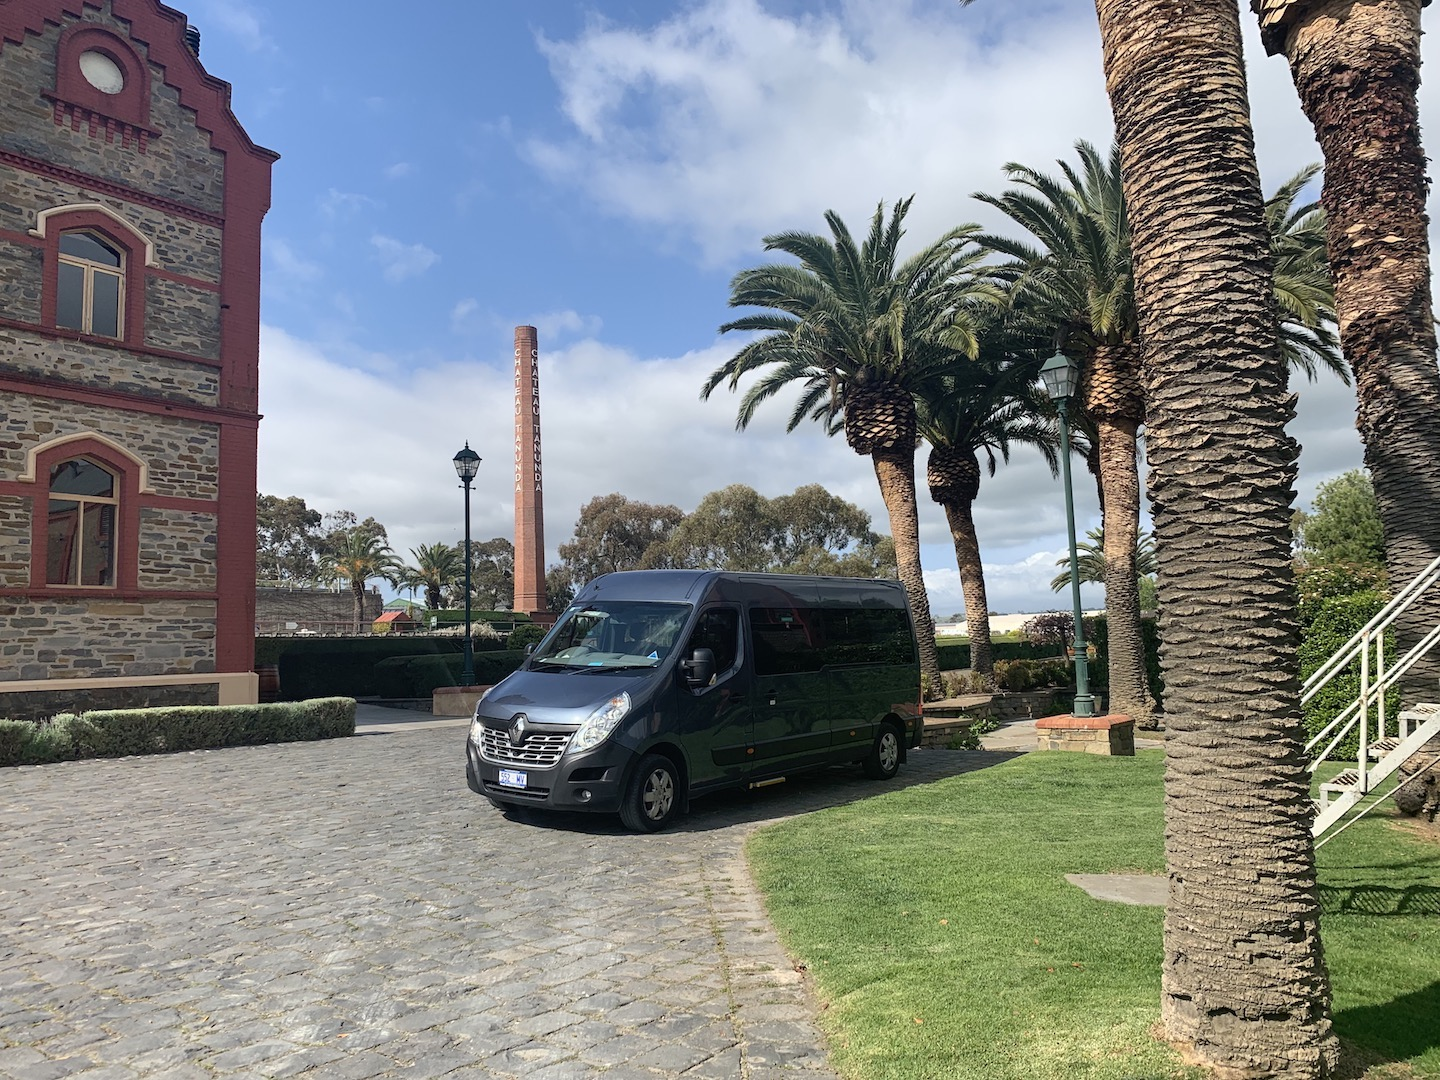 Private wine tasting tour in our blue luxury Renault Mater bus.